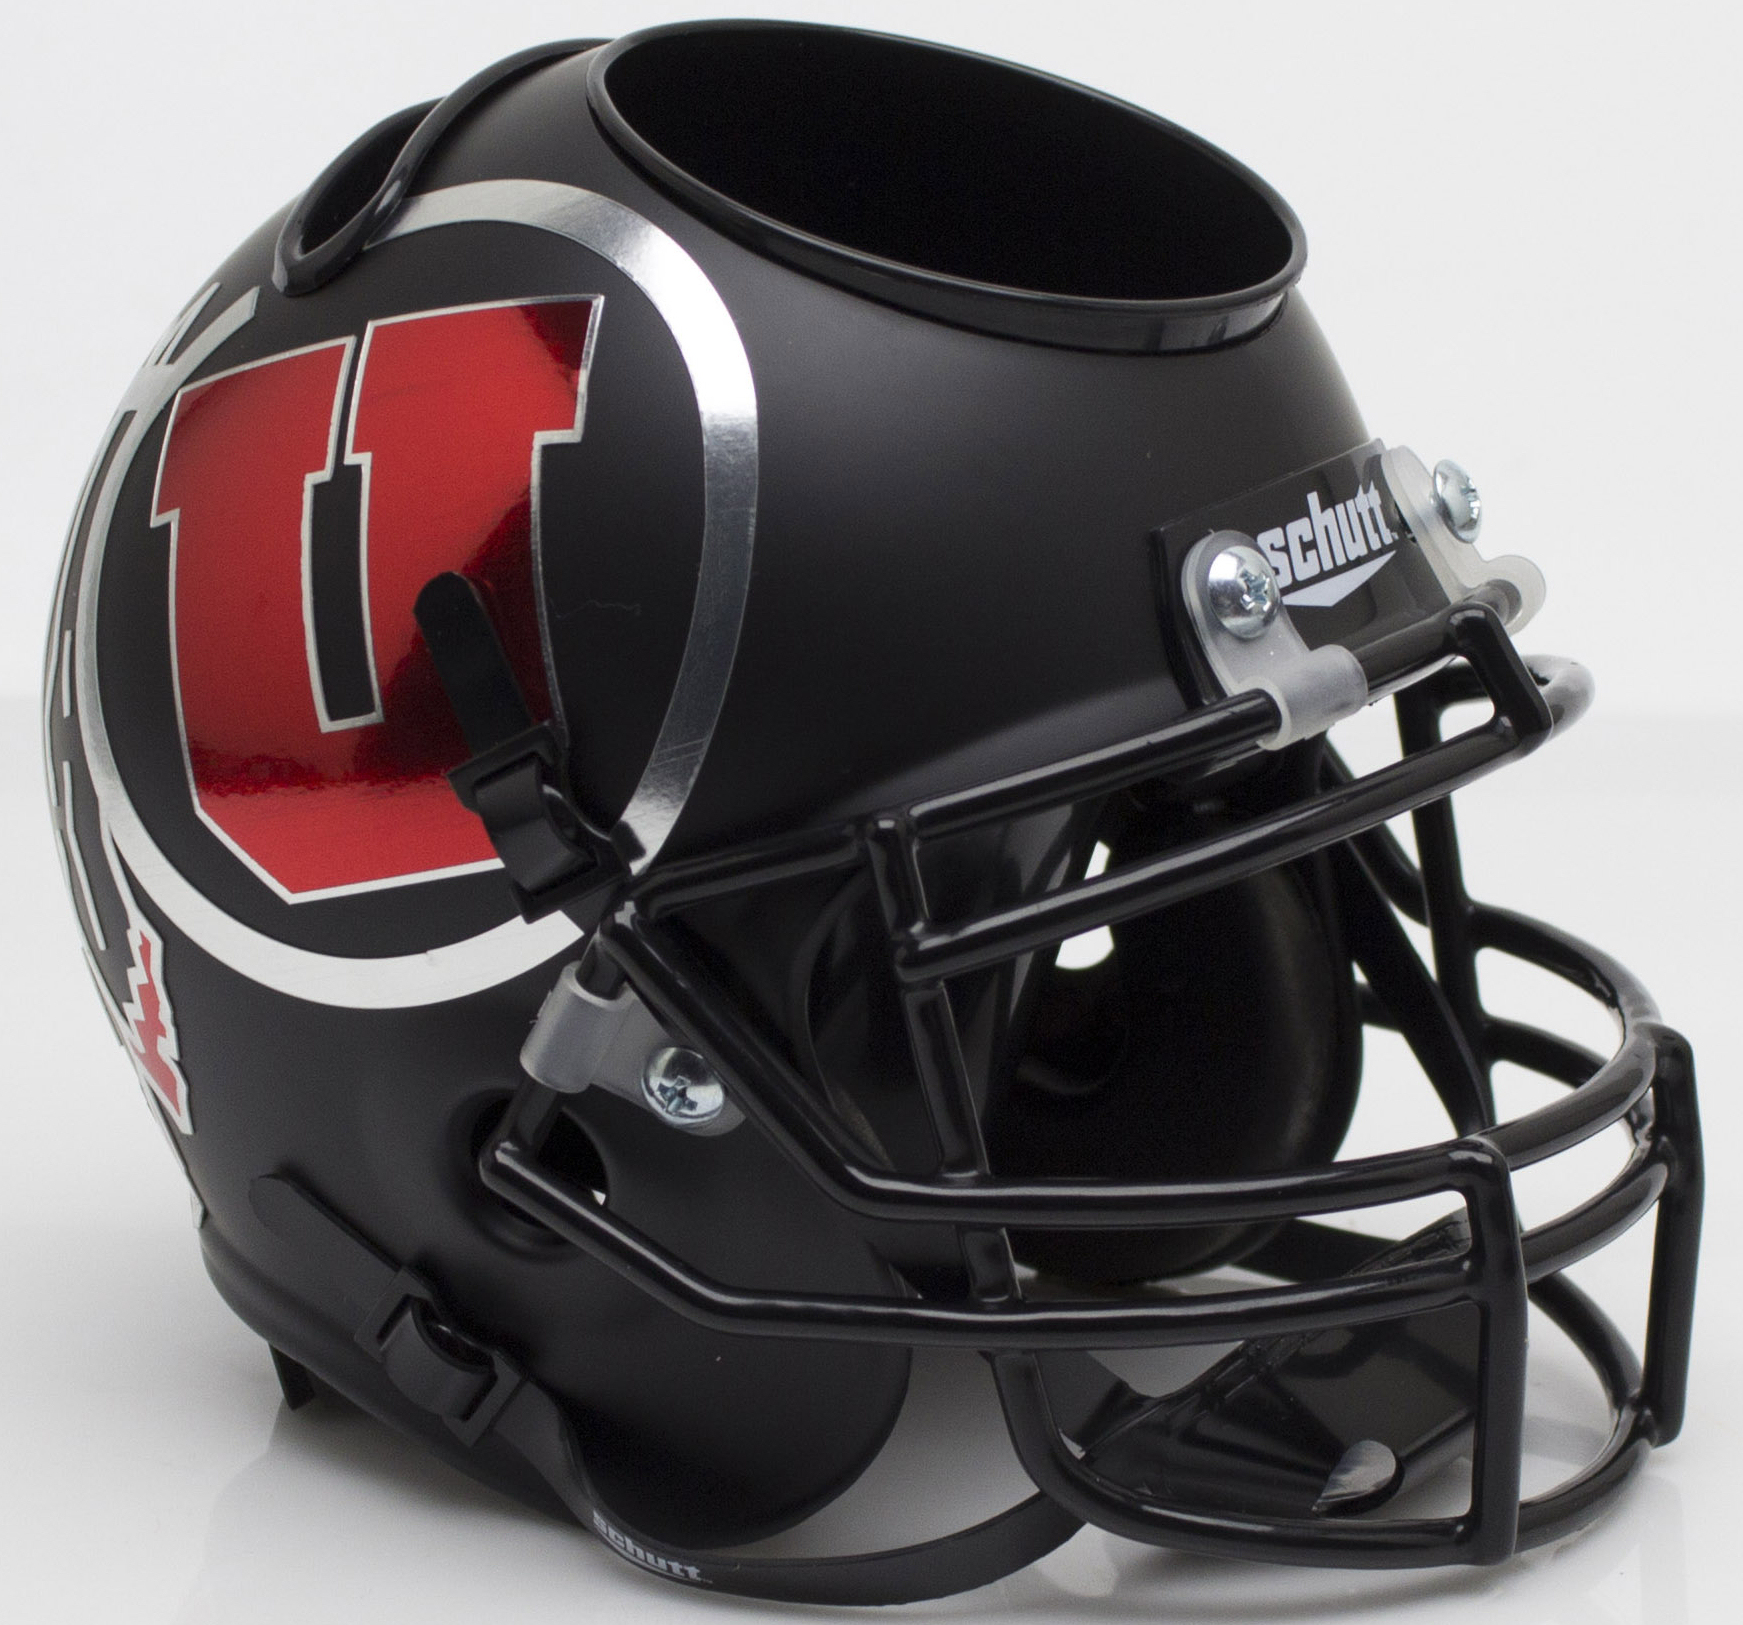 Utah Utes Miniature Football Helmet Desk Caddy <B>Alt 7 Chrome Decal</B>